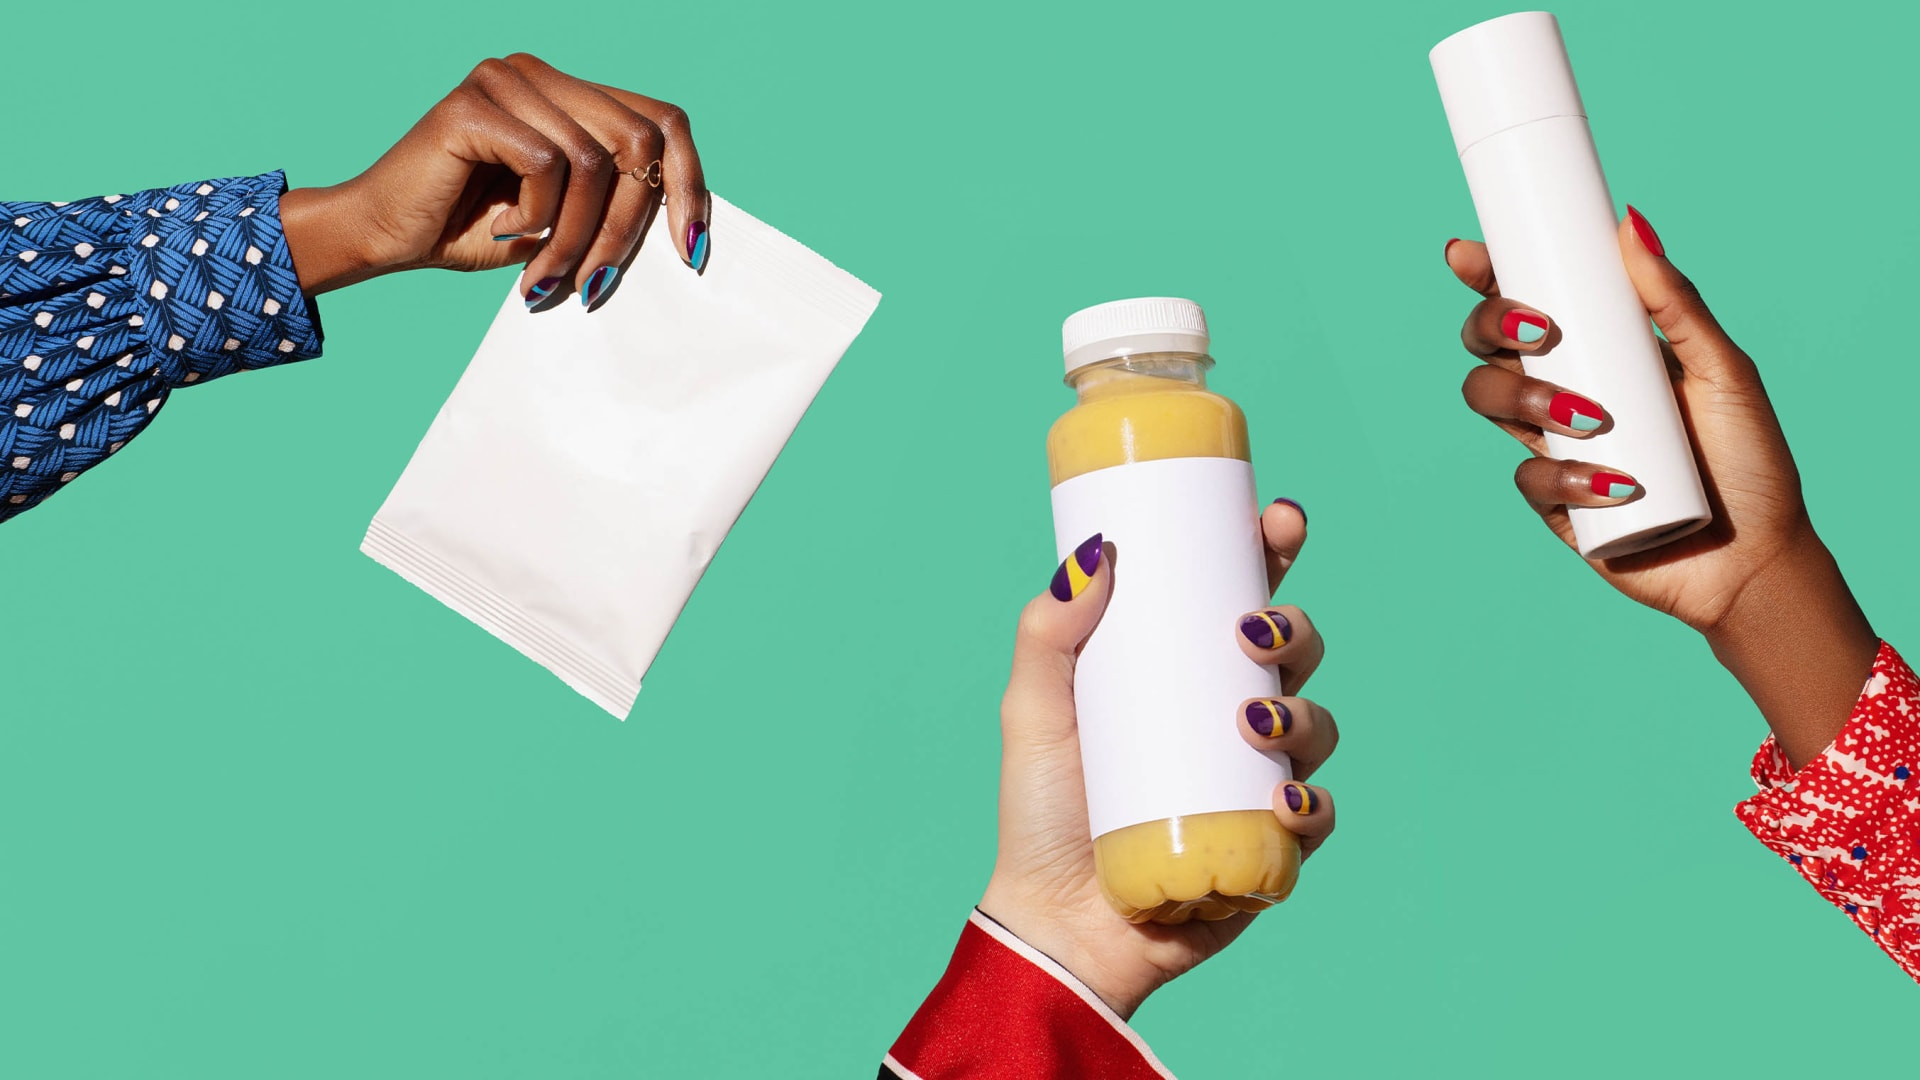 4 E-Commerce Packaging Trends Helping Brands Win on Customer Experience